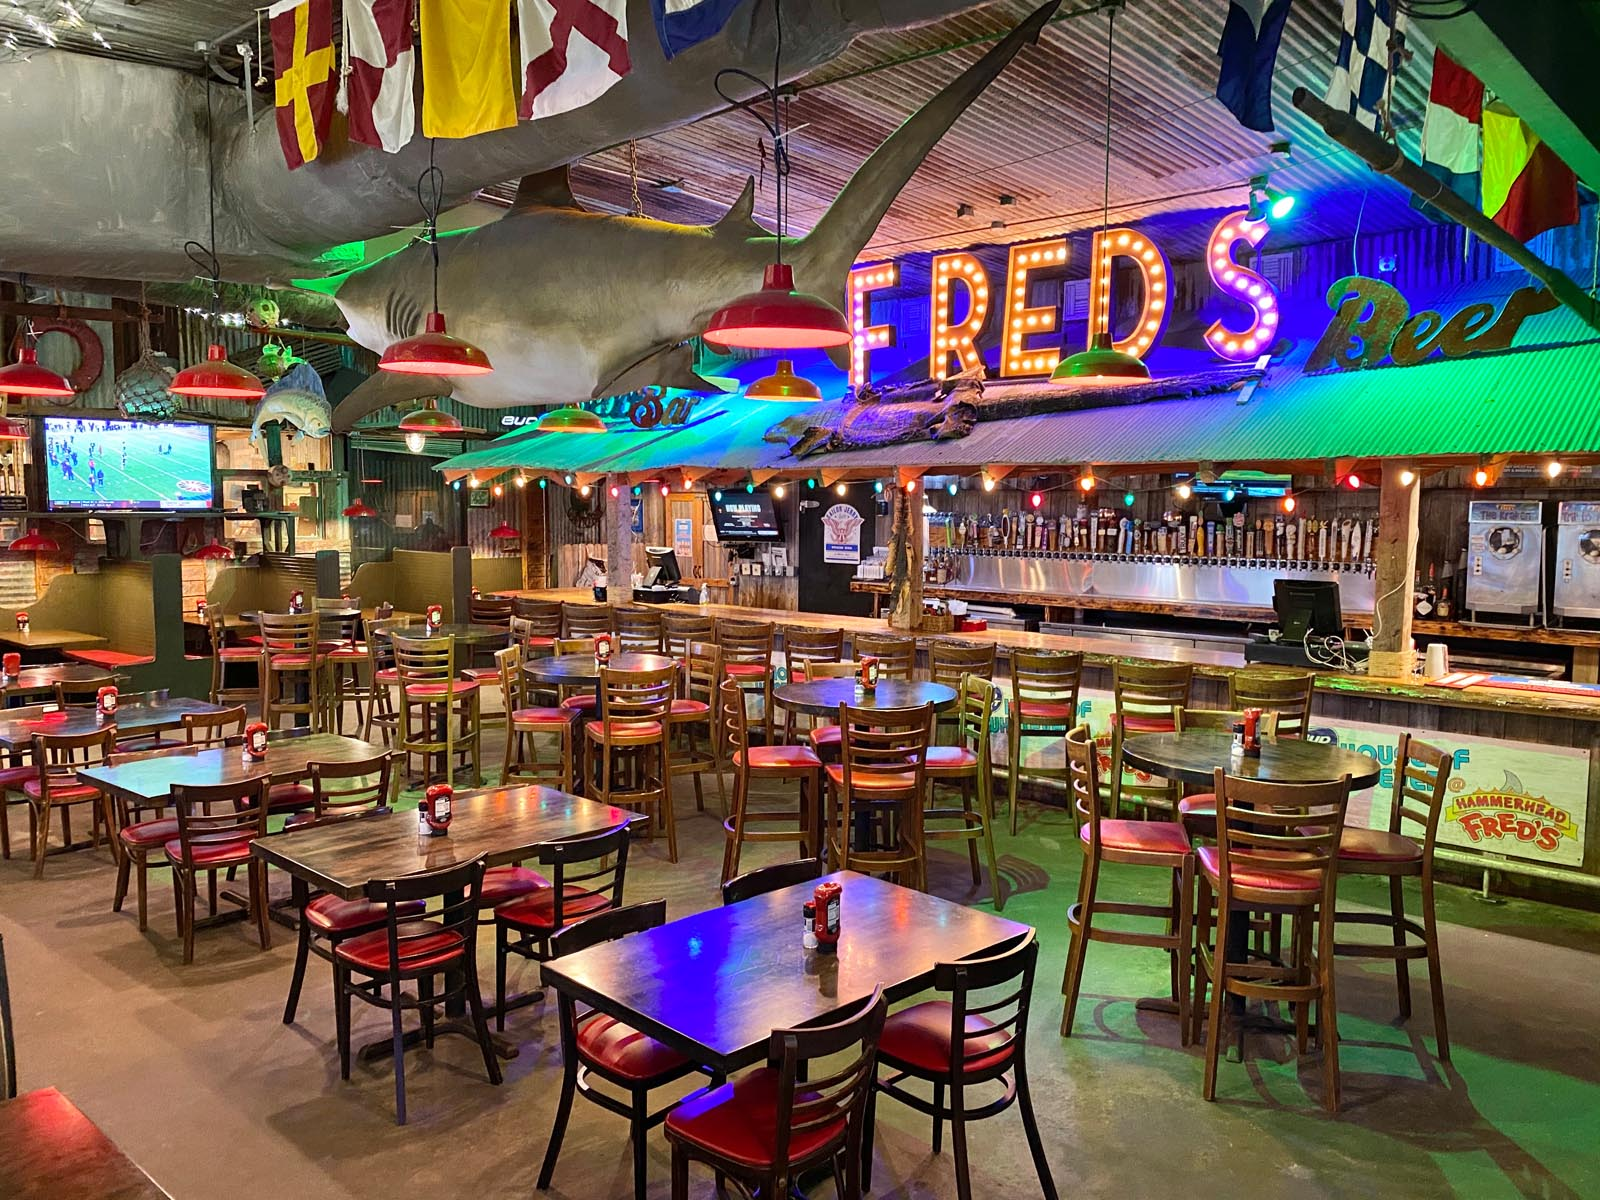 Hammerhead Fred's Restaurant in Panama City Beach, Florida